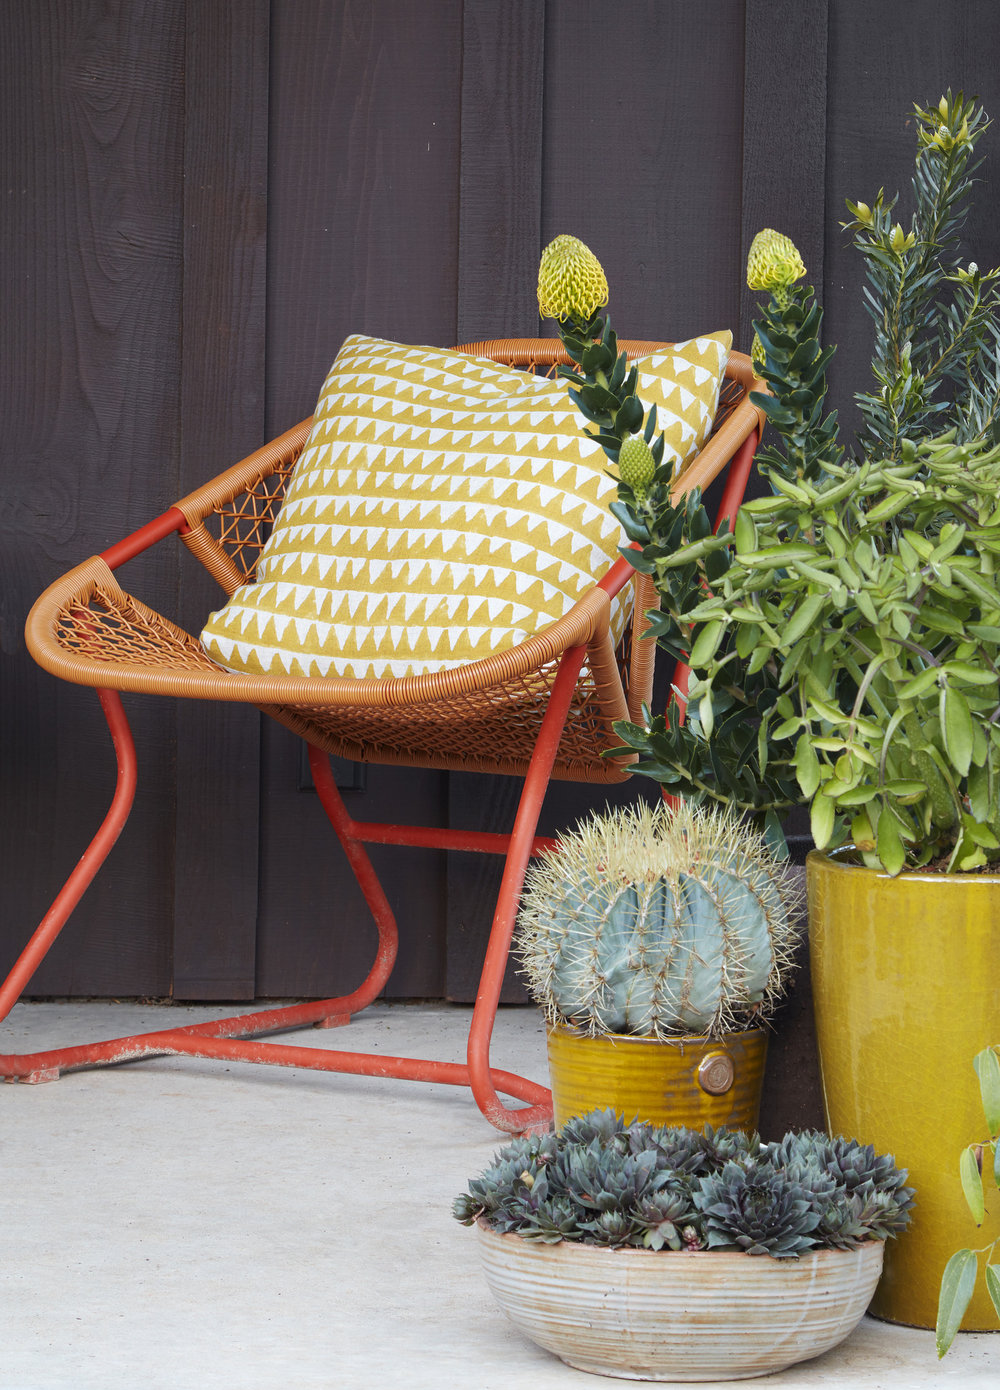 Flora Grubb Gardens Outdoor Furniture Fermob Sixties Chair